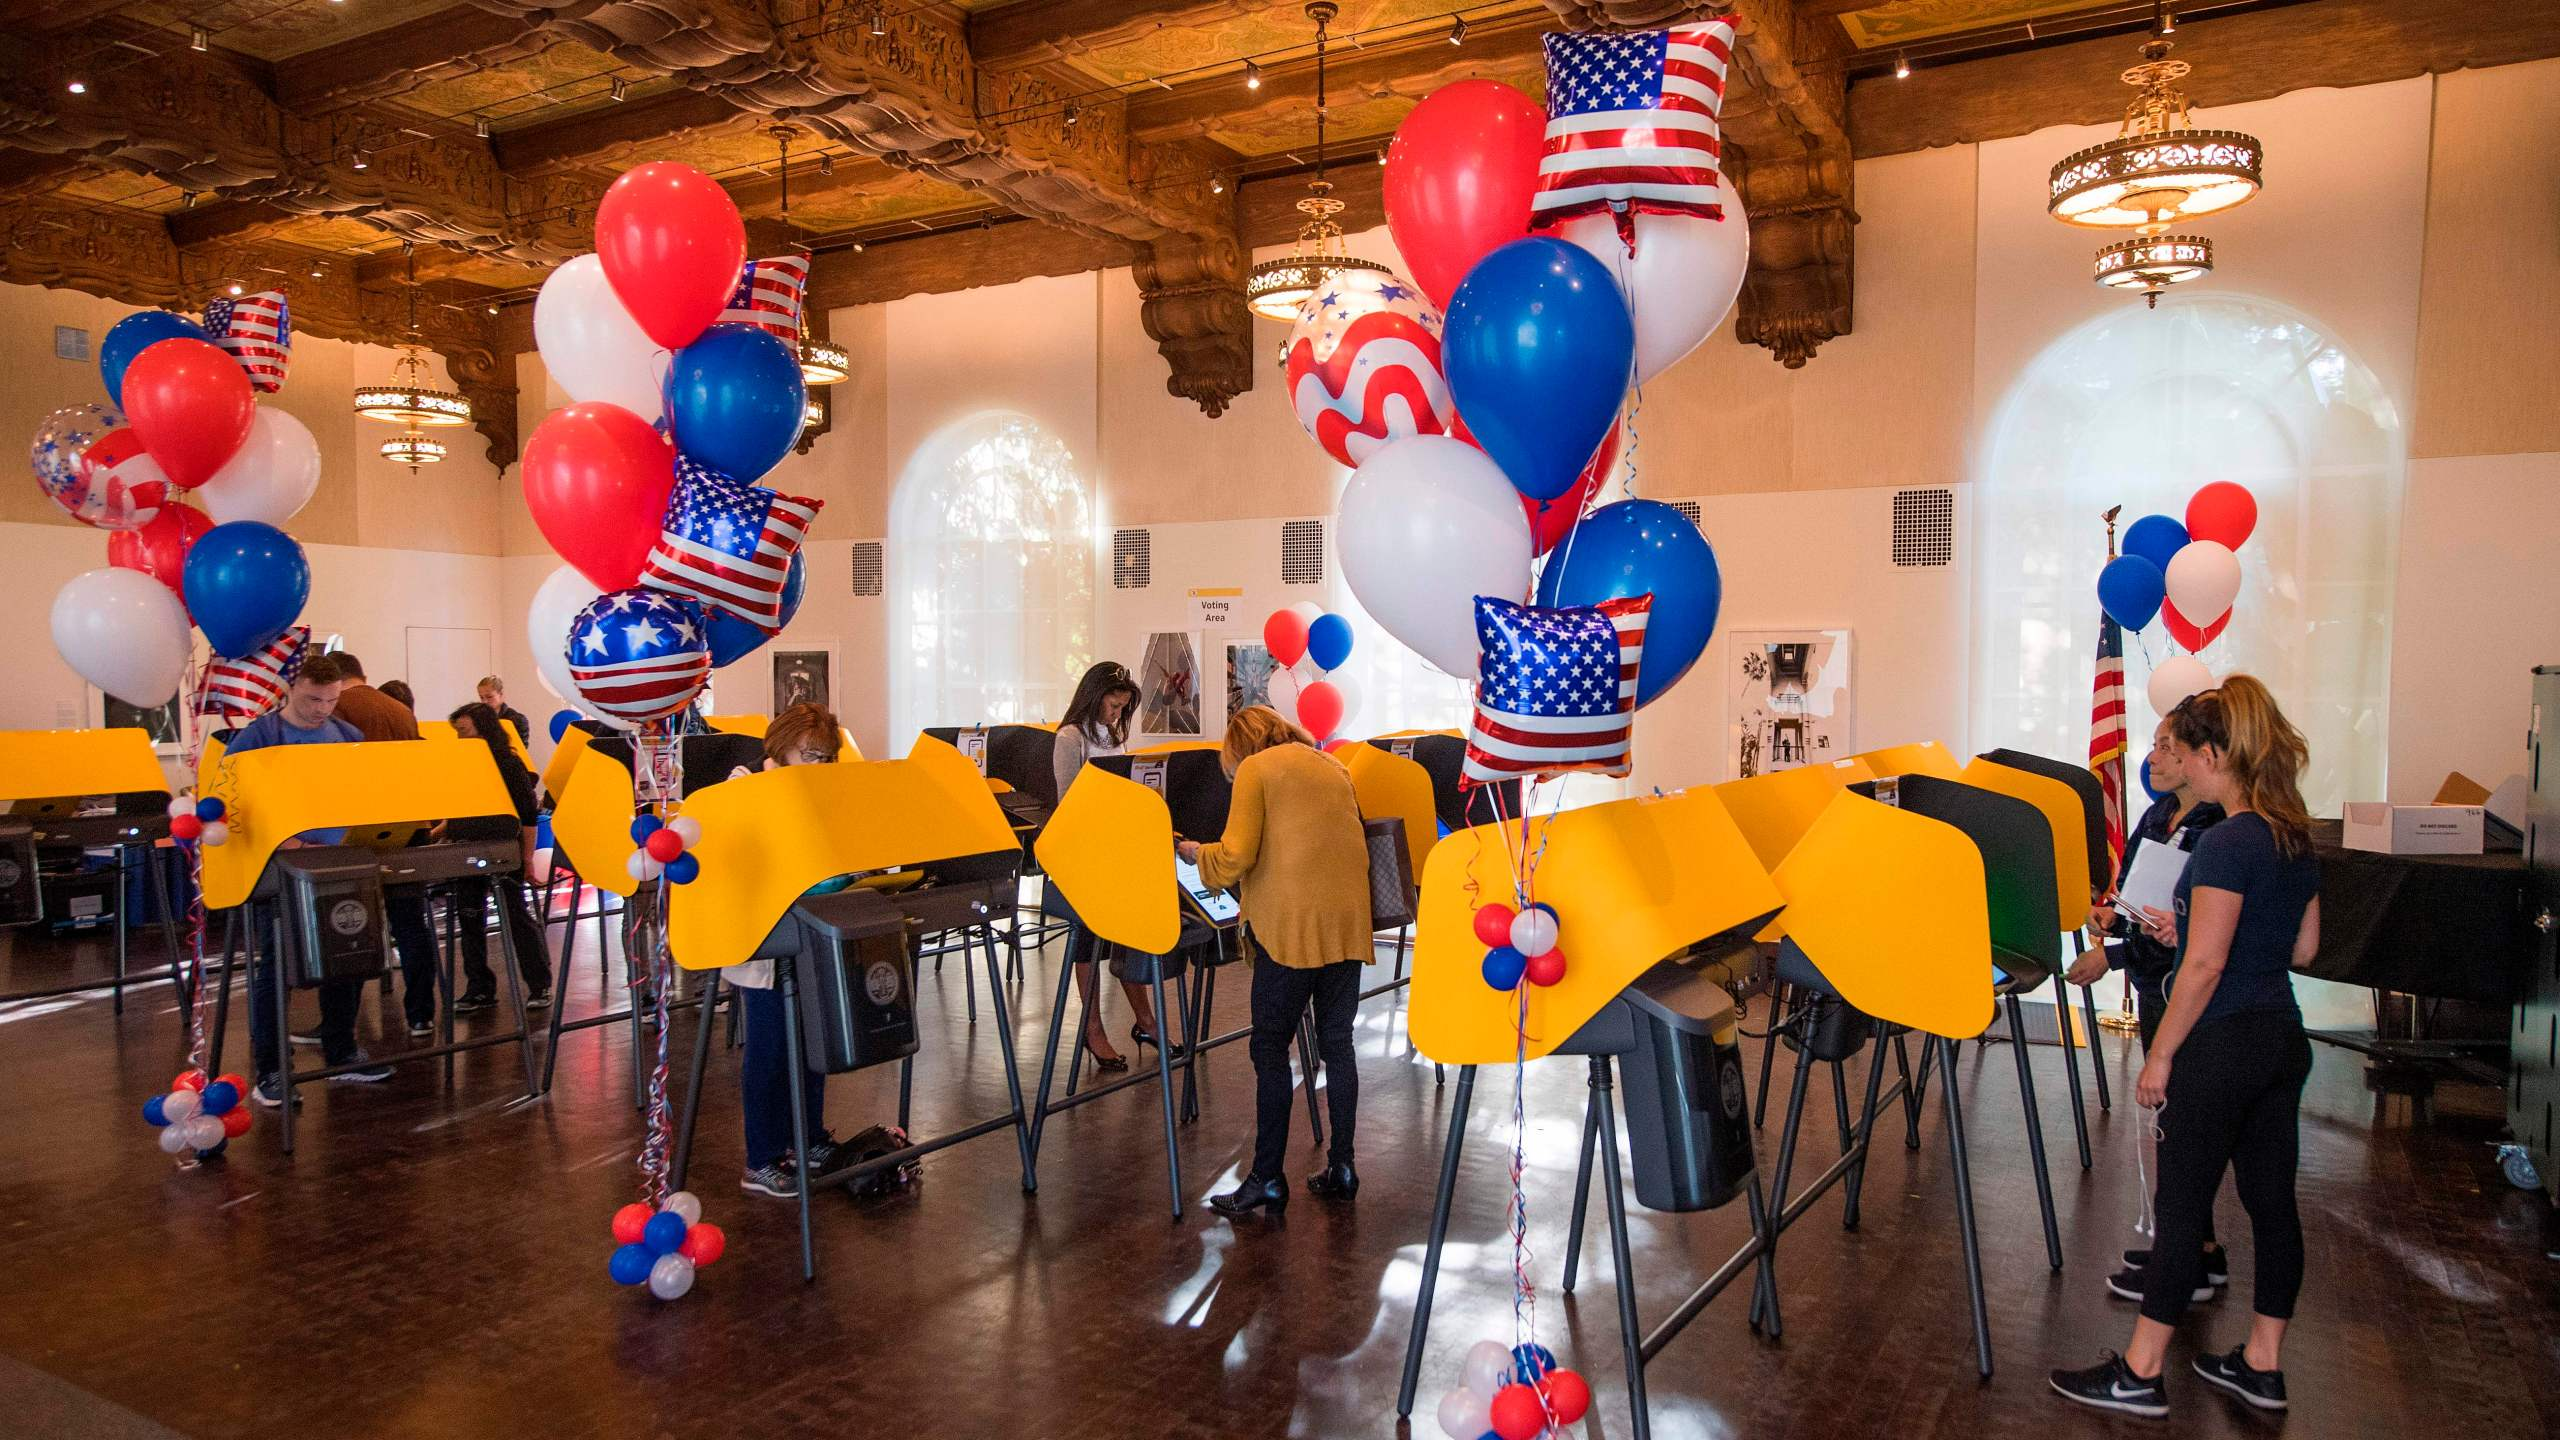 Residents cast their ballots during the presidential primary in Beverly Hills on Super Tuesday, March 3, 2020. (MARK RALSTON/AFP via Getty Images)